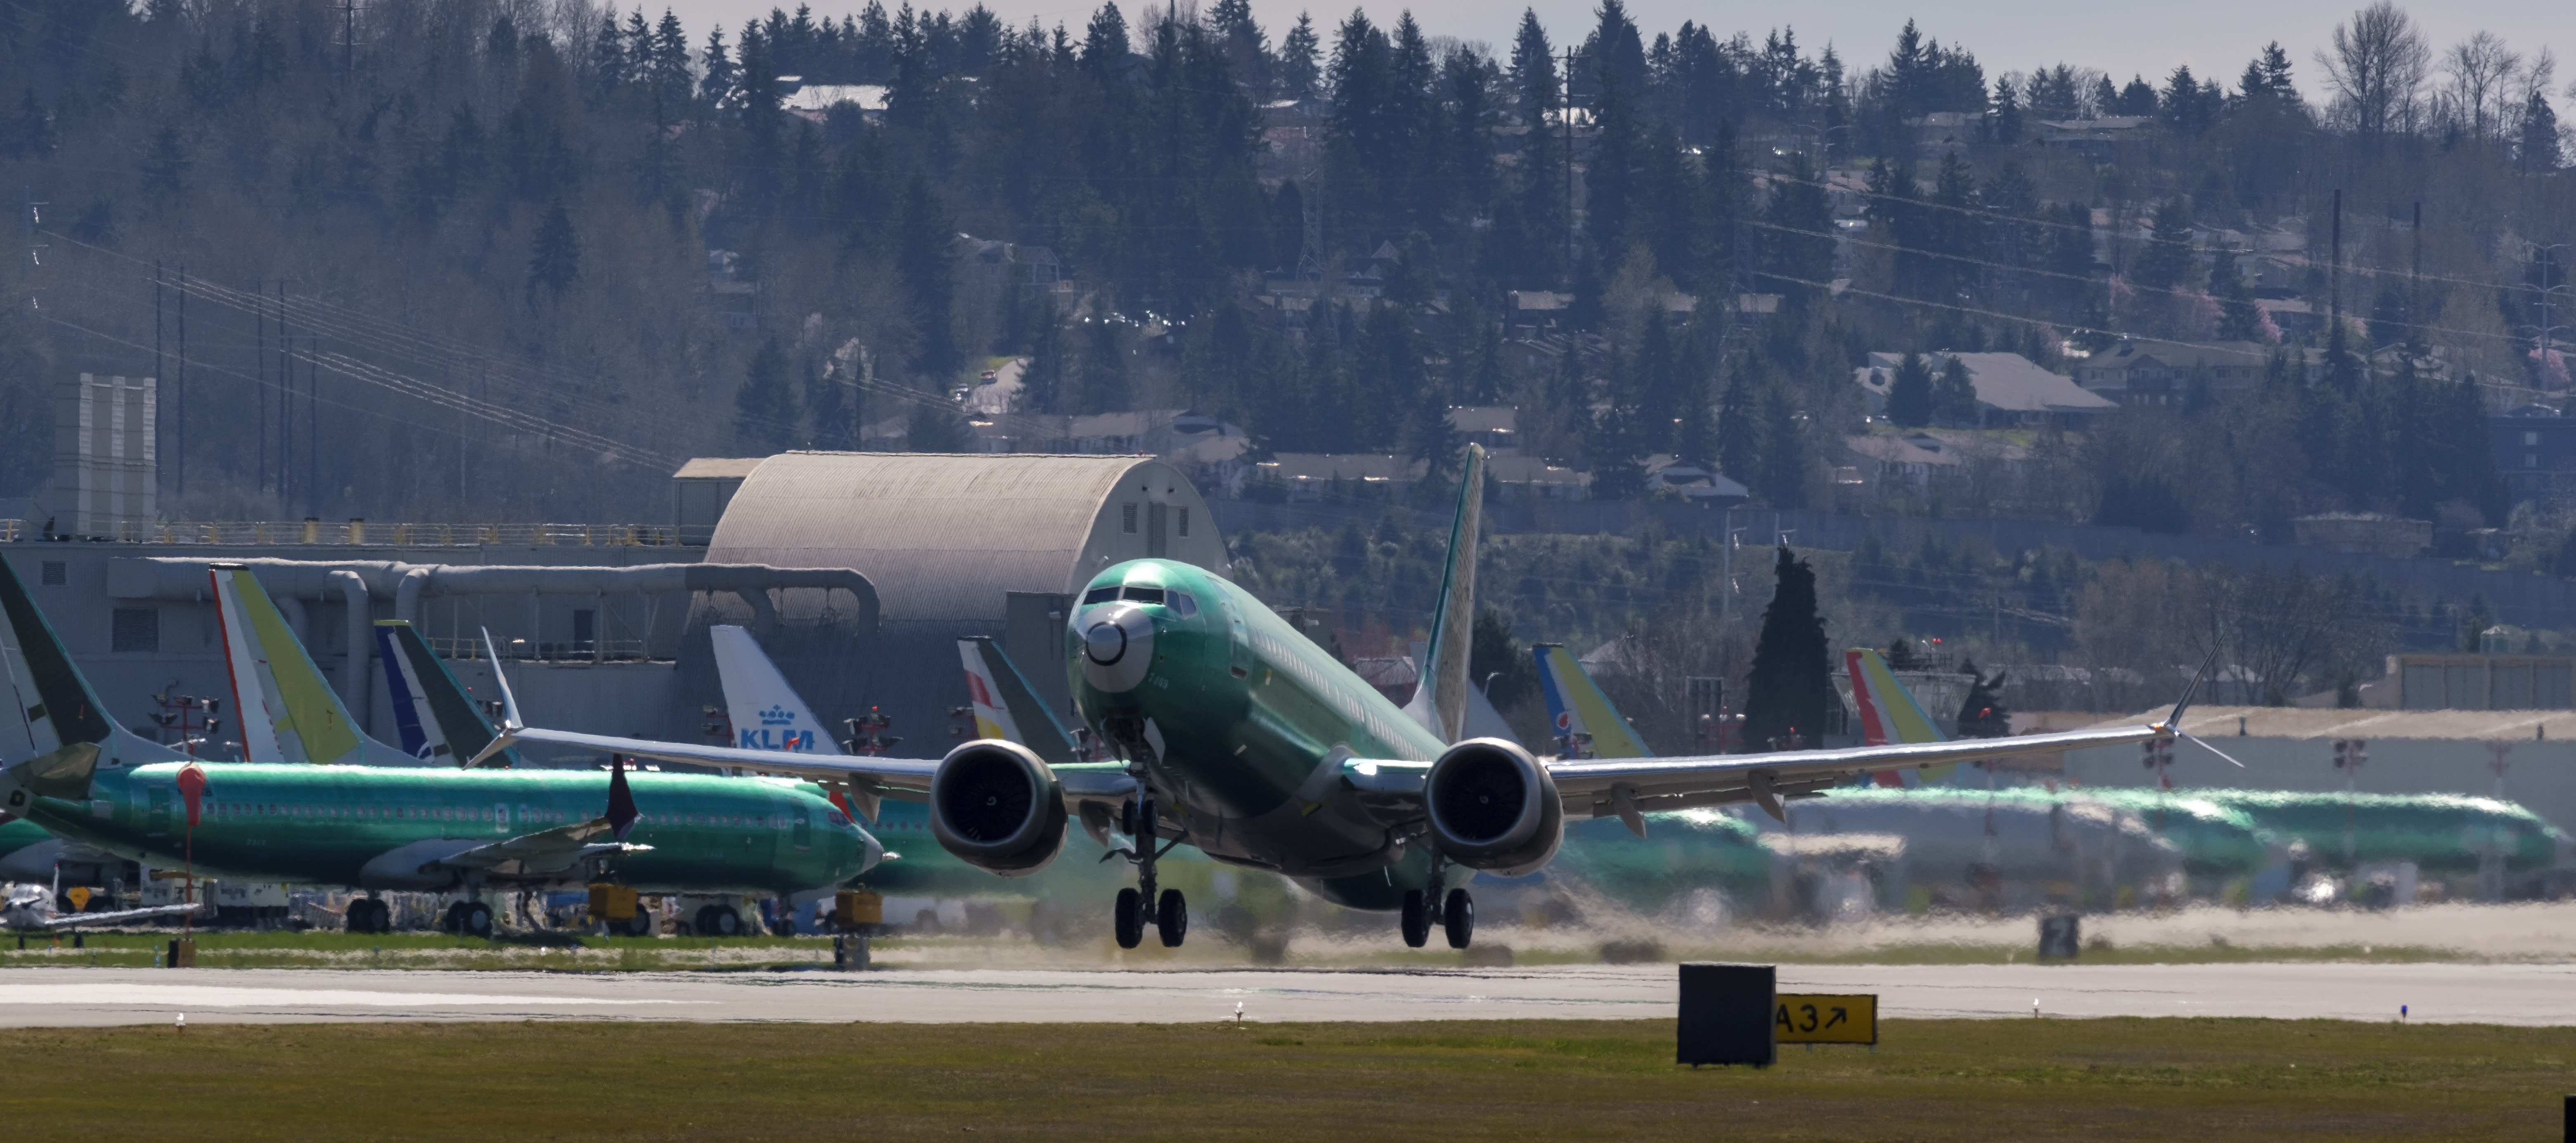 FAA starts Boeing 737 Max test flights, a milestone in getting the planes back in service after crashes